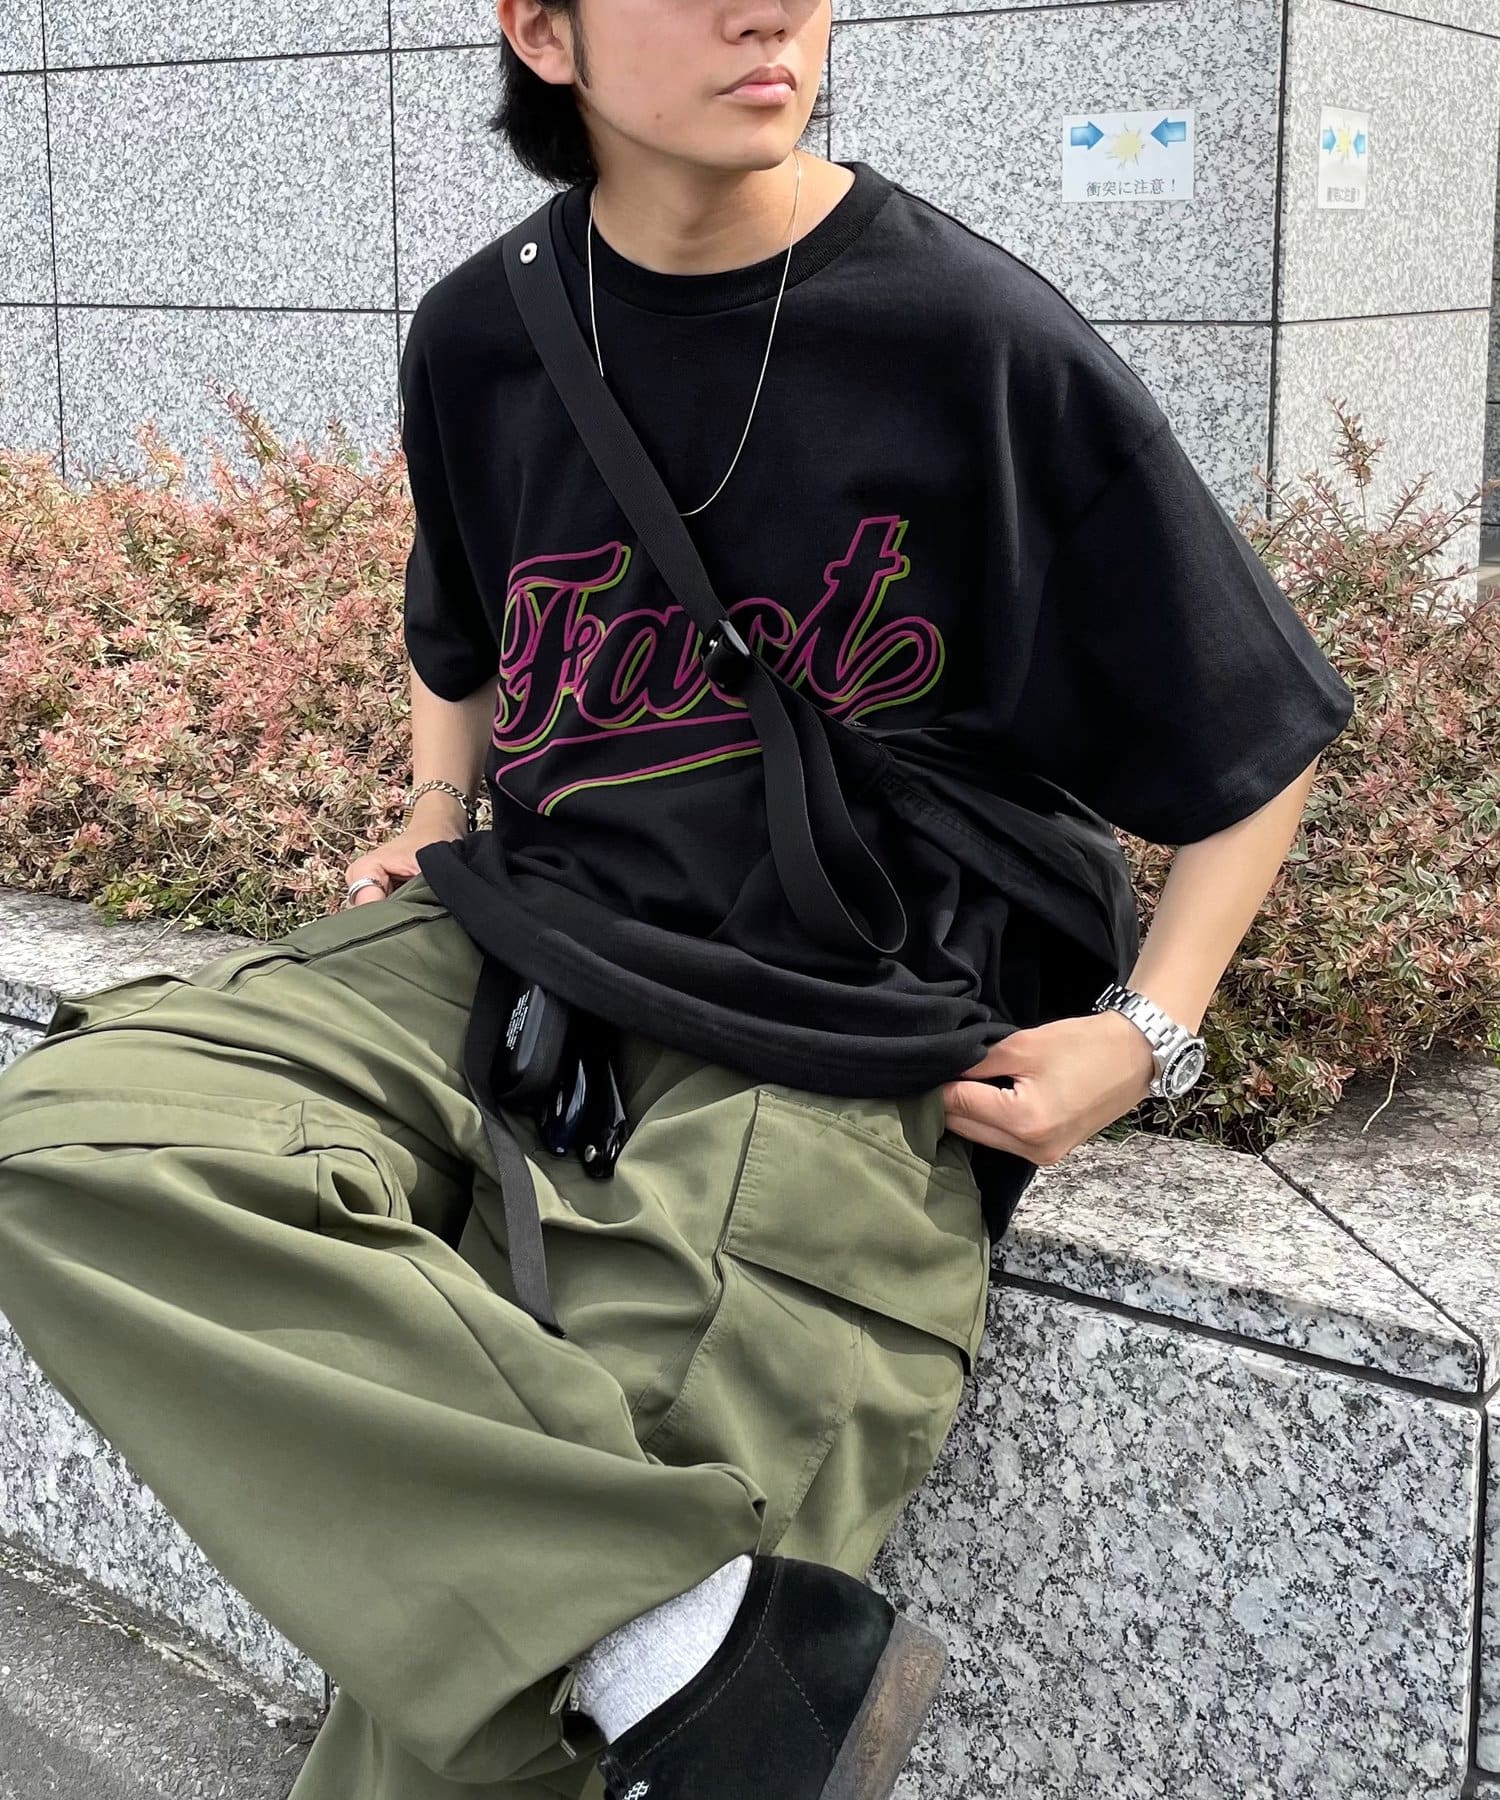 WHO'S WHO gallery(フーズフーギャラリー) COOPER FACTフロッキーTEE